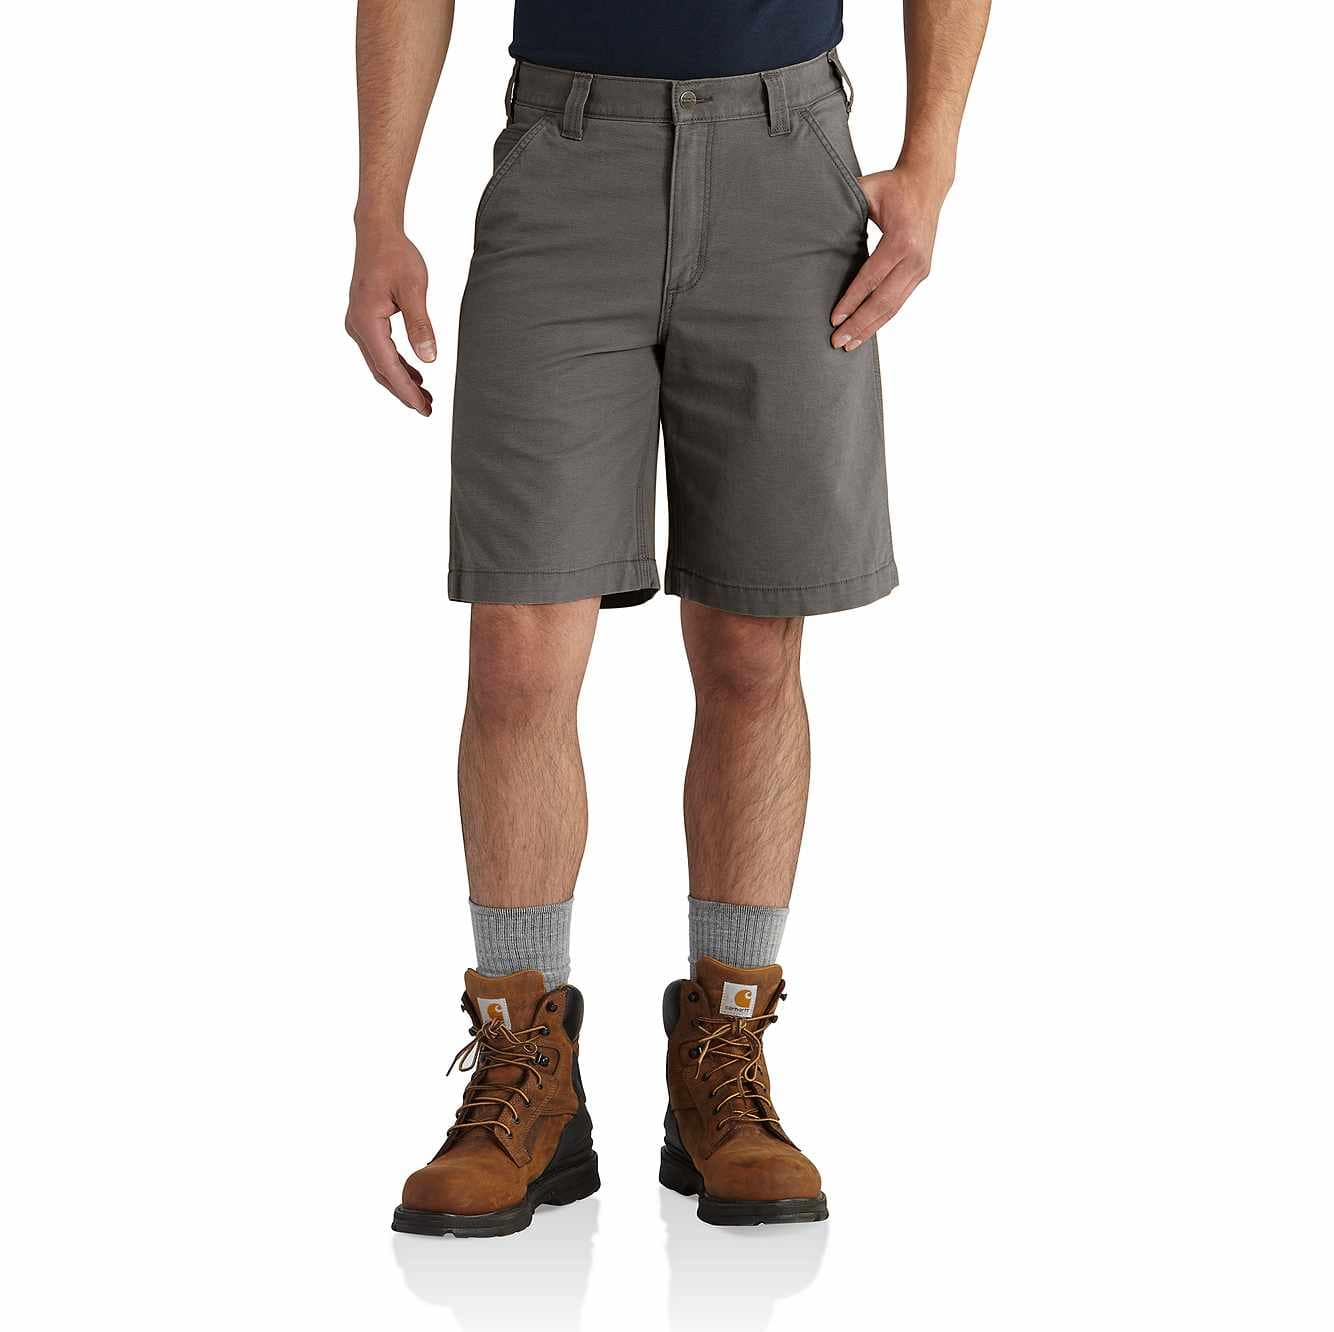 Picture of Rugged Flex® Rigby Short in Gravel